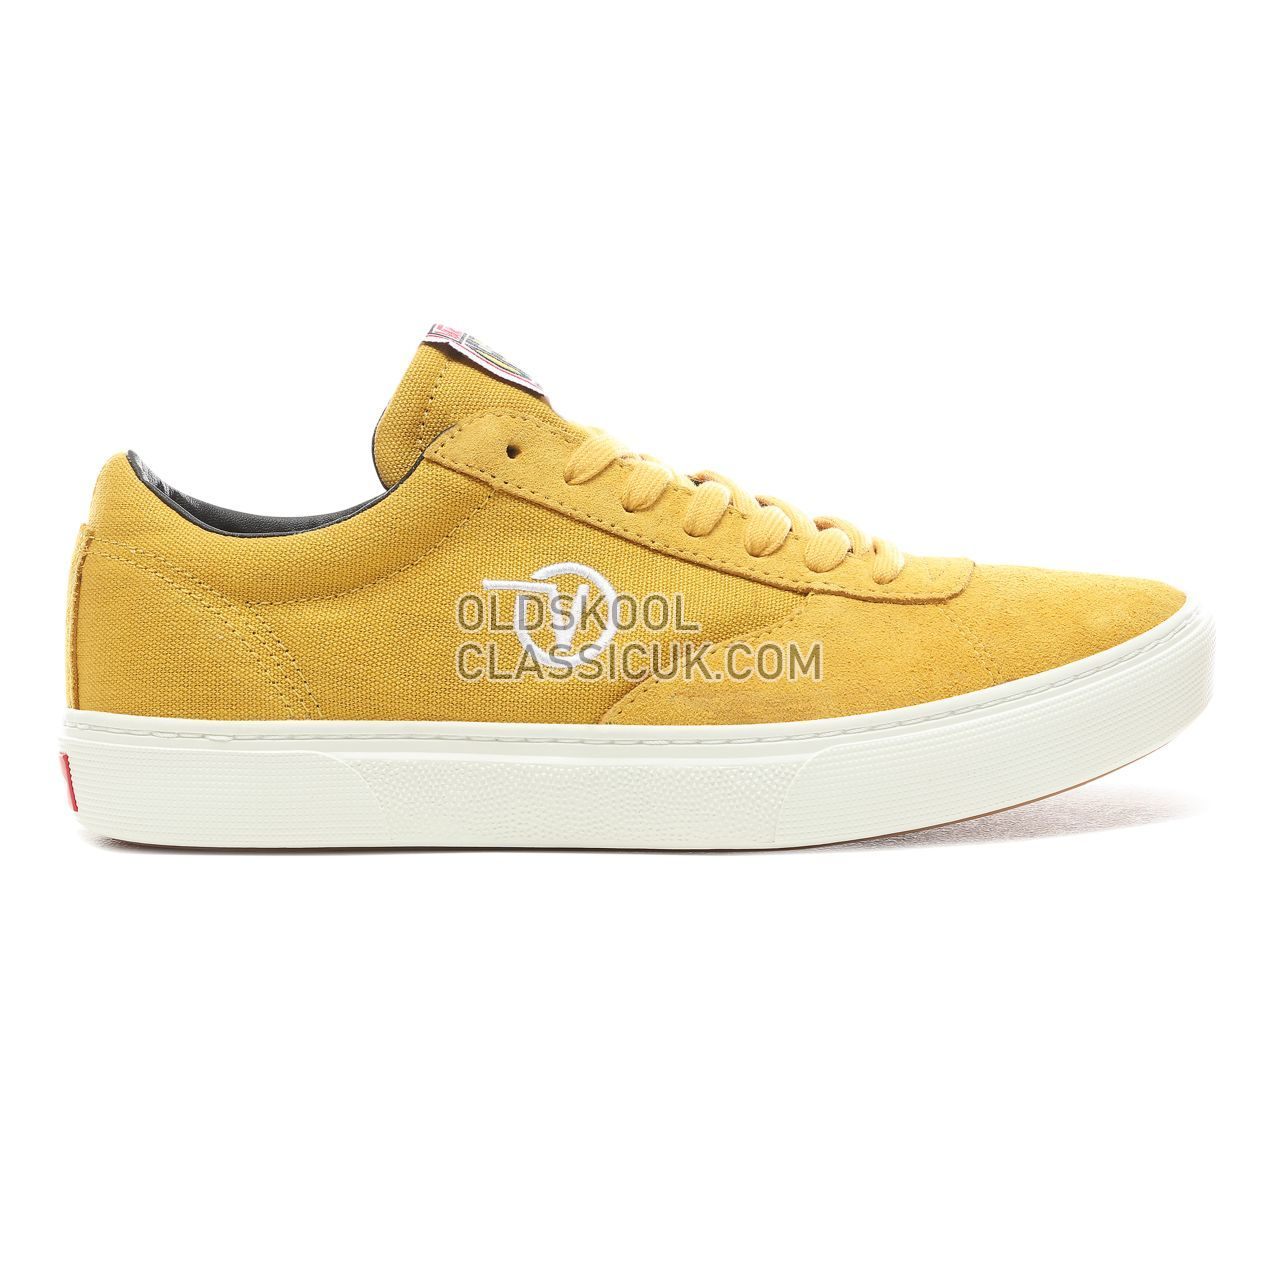 Vans Paradoxxx Sneakers Mens Yolk Yellow VN0A3TKKNYJ Shoes